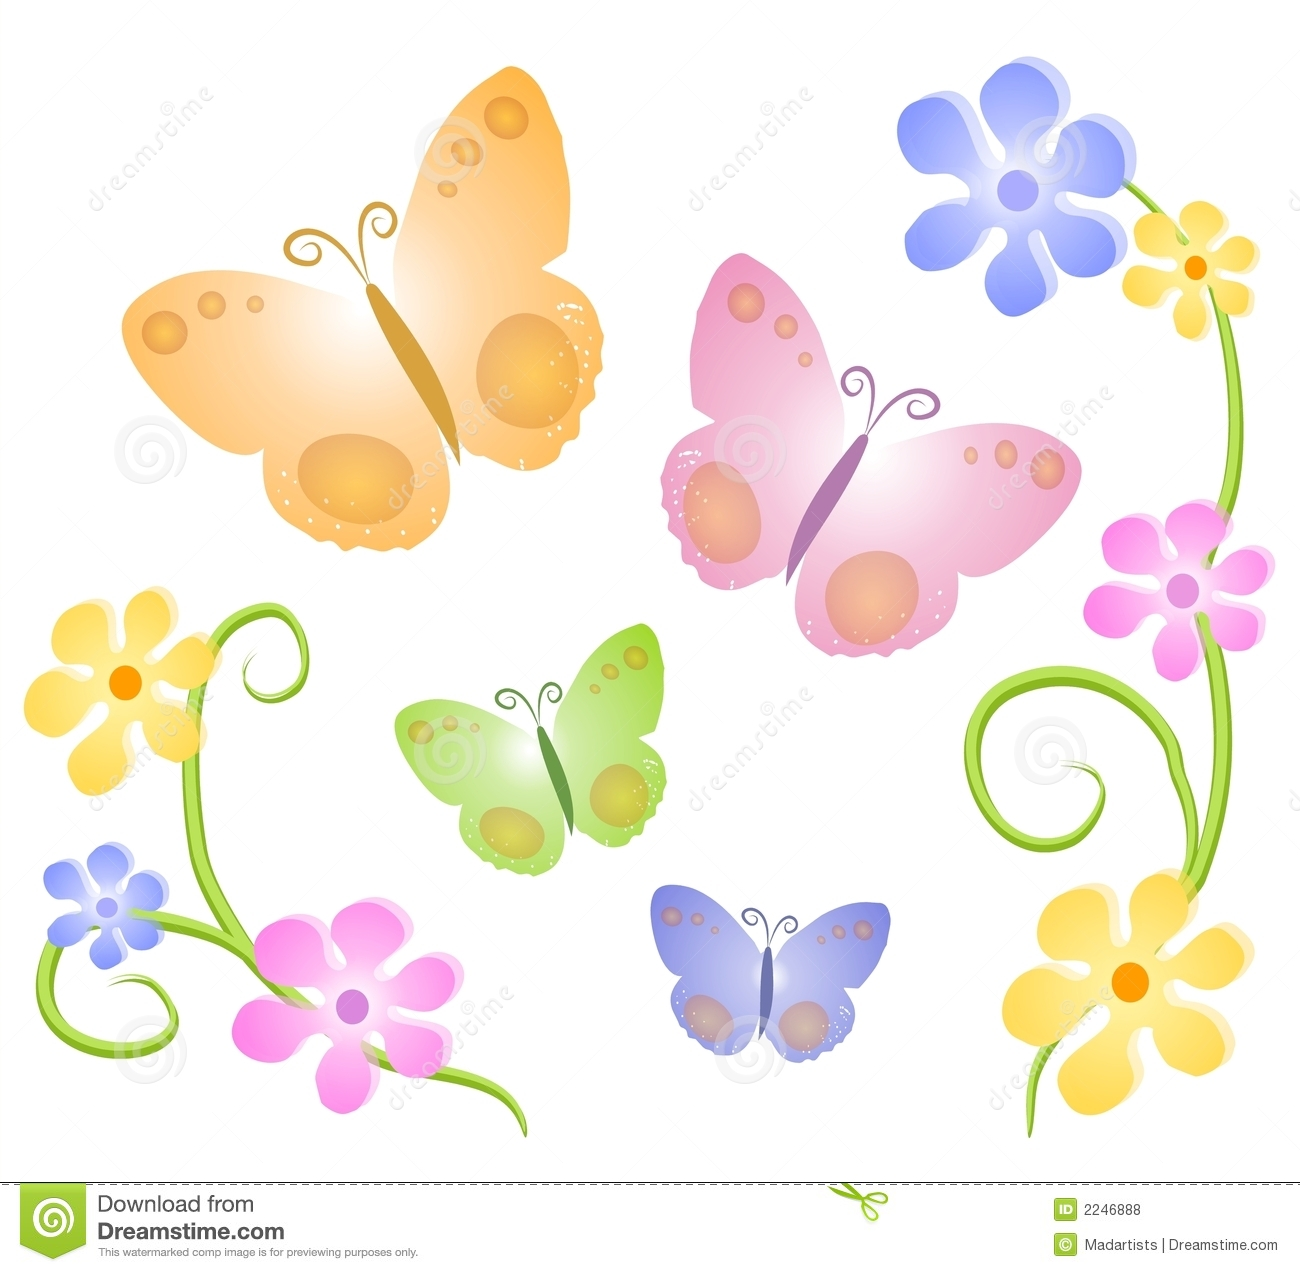 butterflies flowers clip art 2 stock illustration illustration of rh dreamstime com free clipart butterflies and flowers clipart flowers and butterflies png